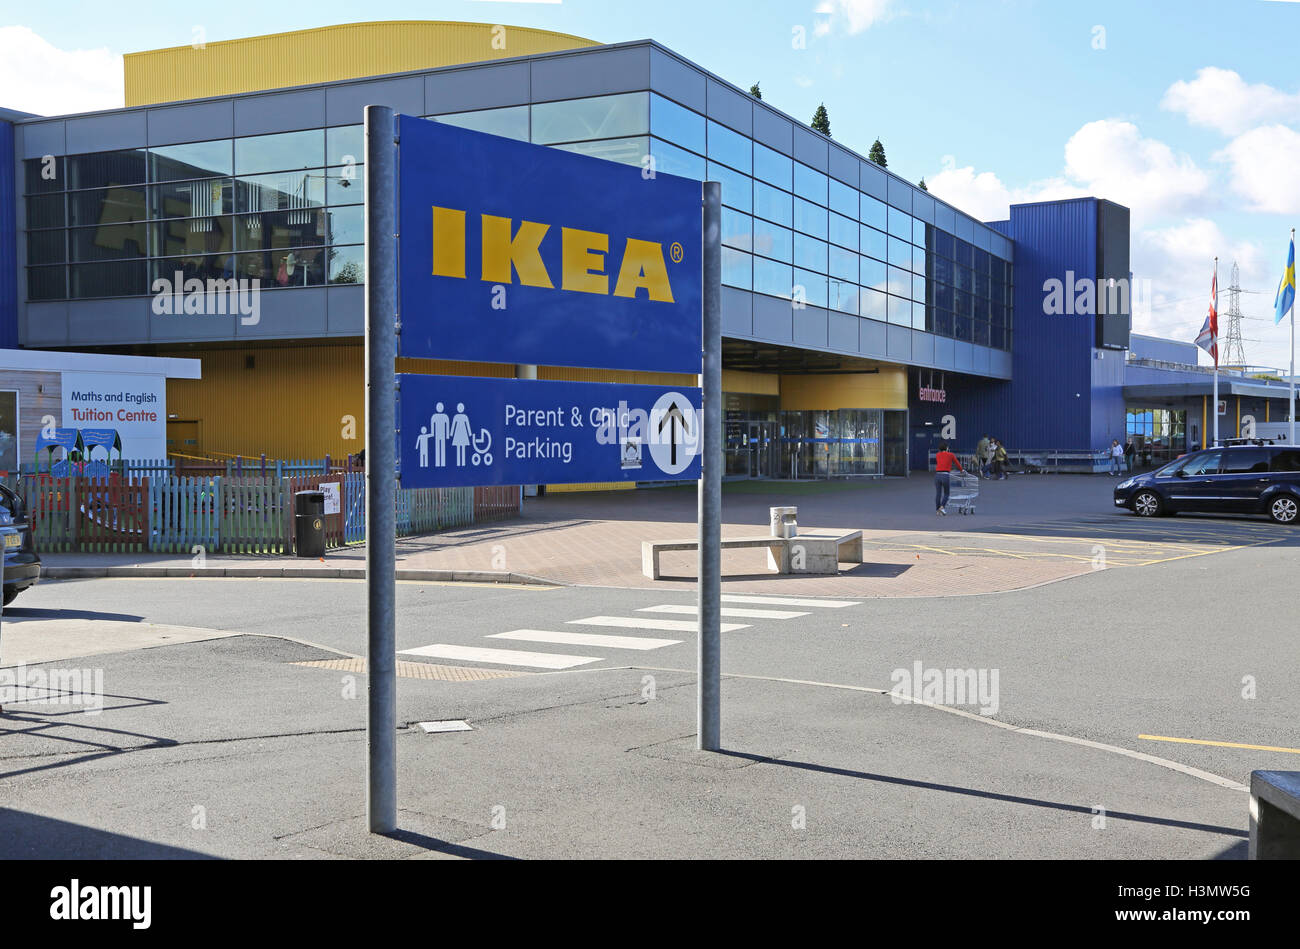 entrance ikea store stock photos entrance ikea store. Black Bedroom Furniture Sets. Home Design Ideas